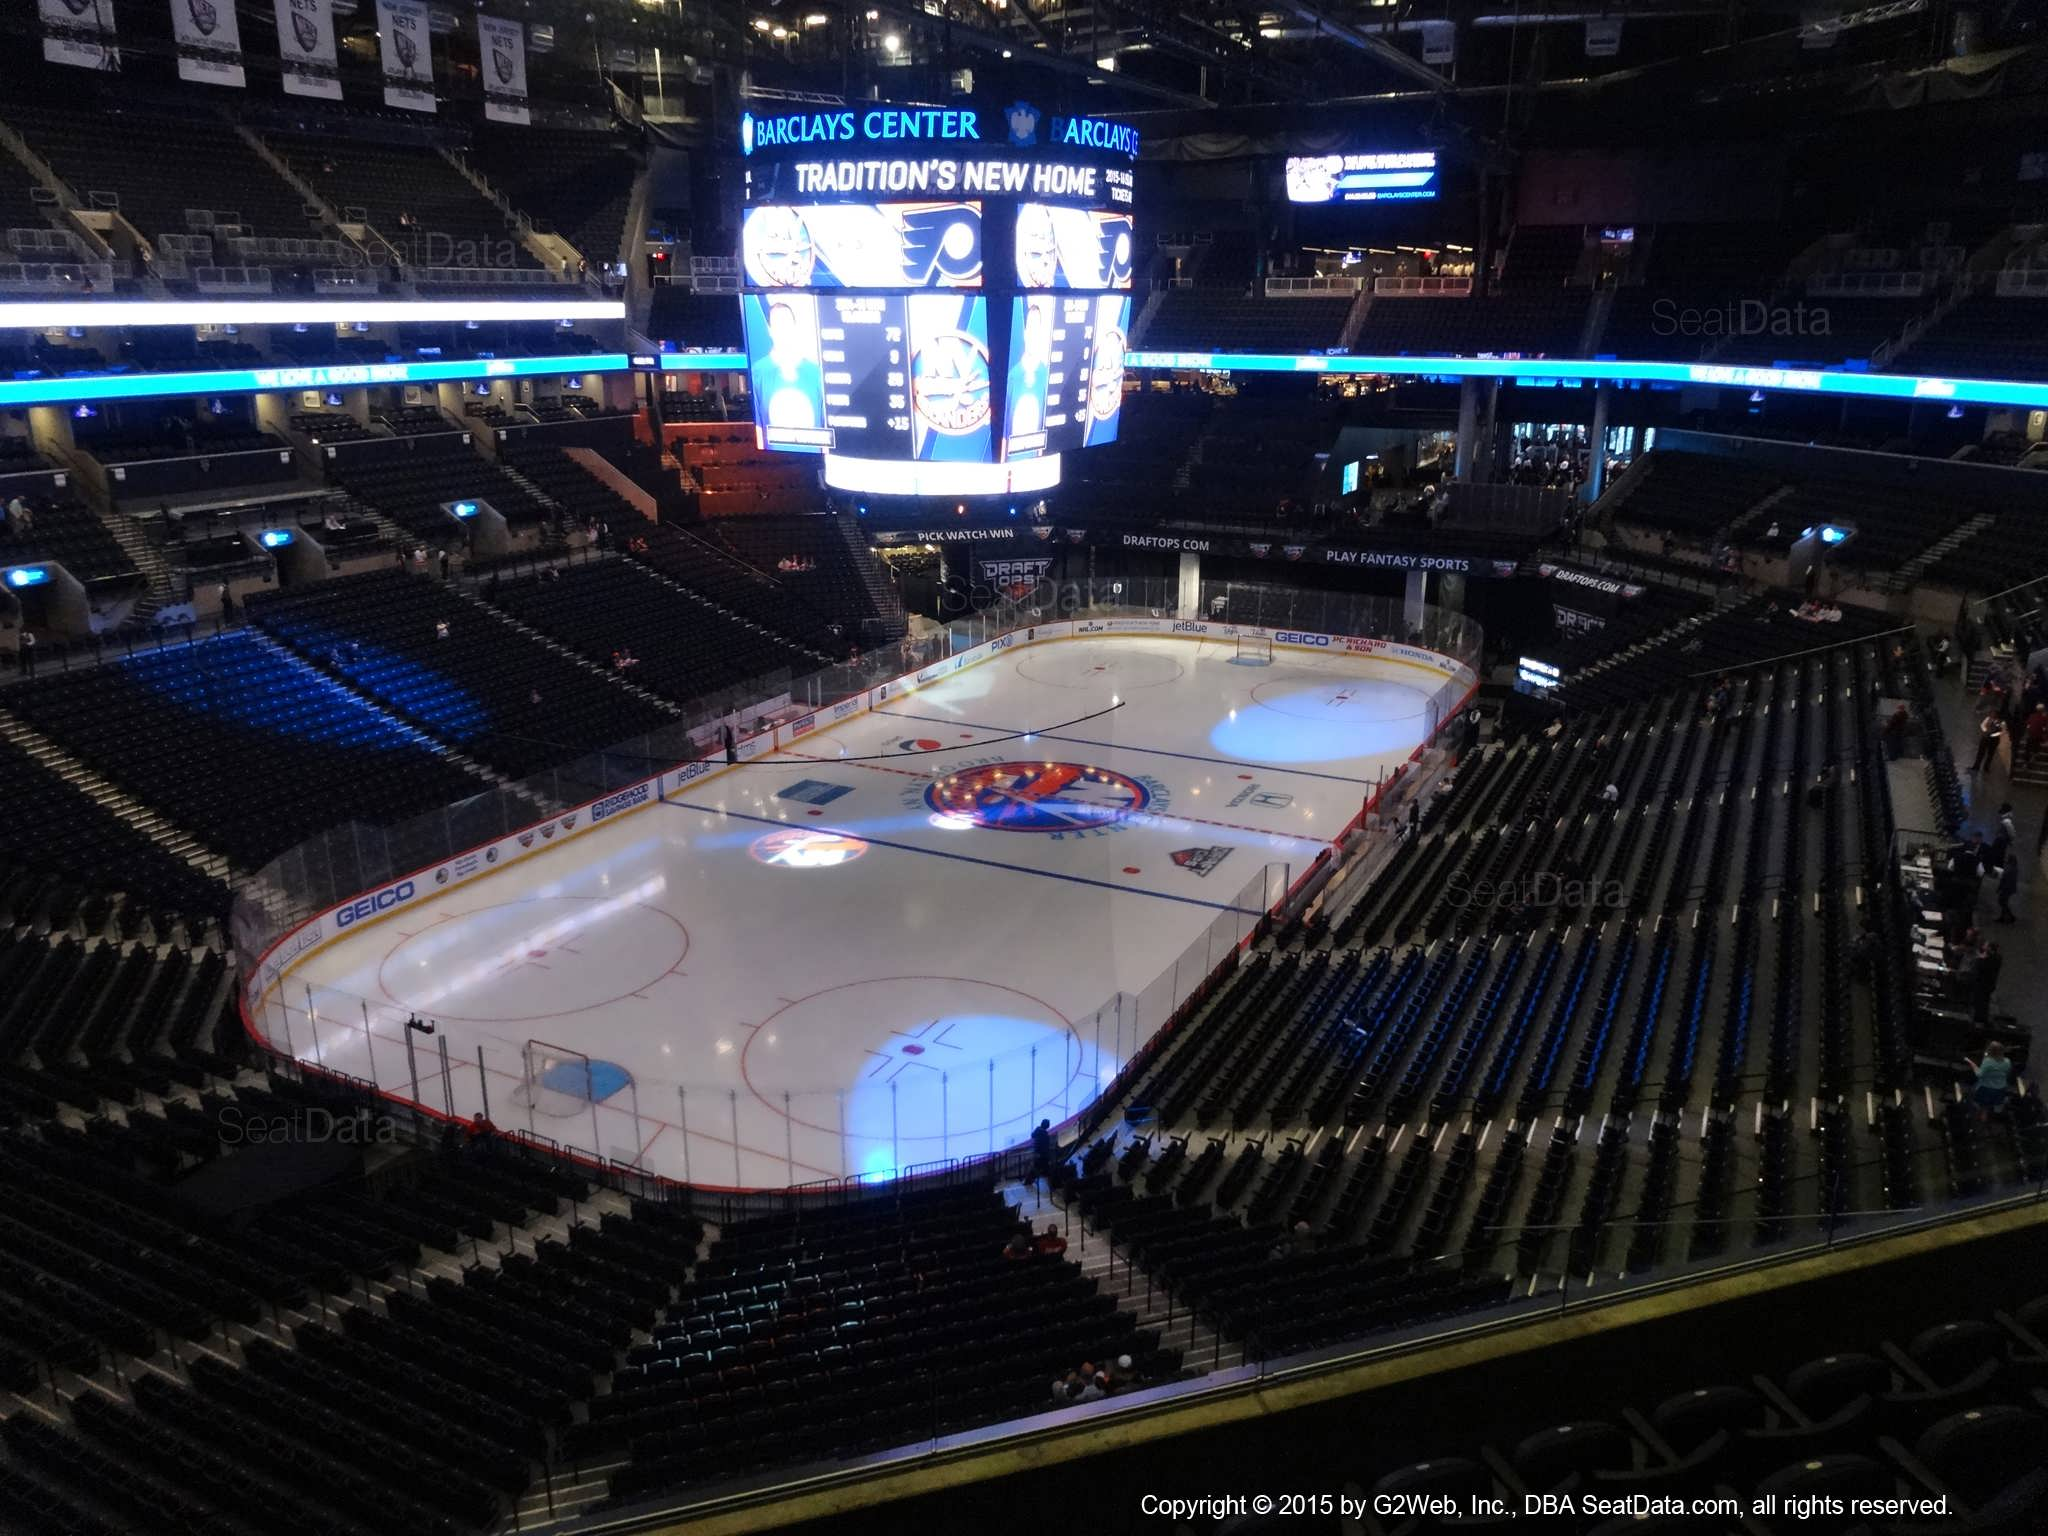 Seat View from Section 213 at the Barclays Center, home of the New York Islanders